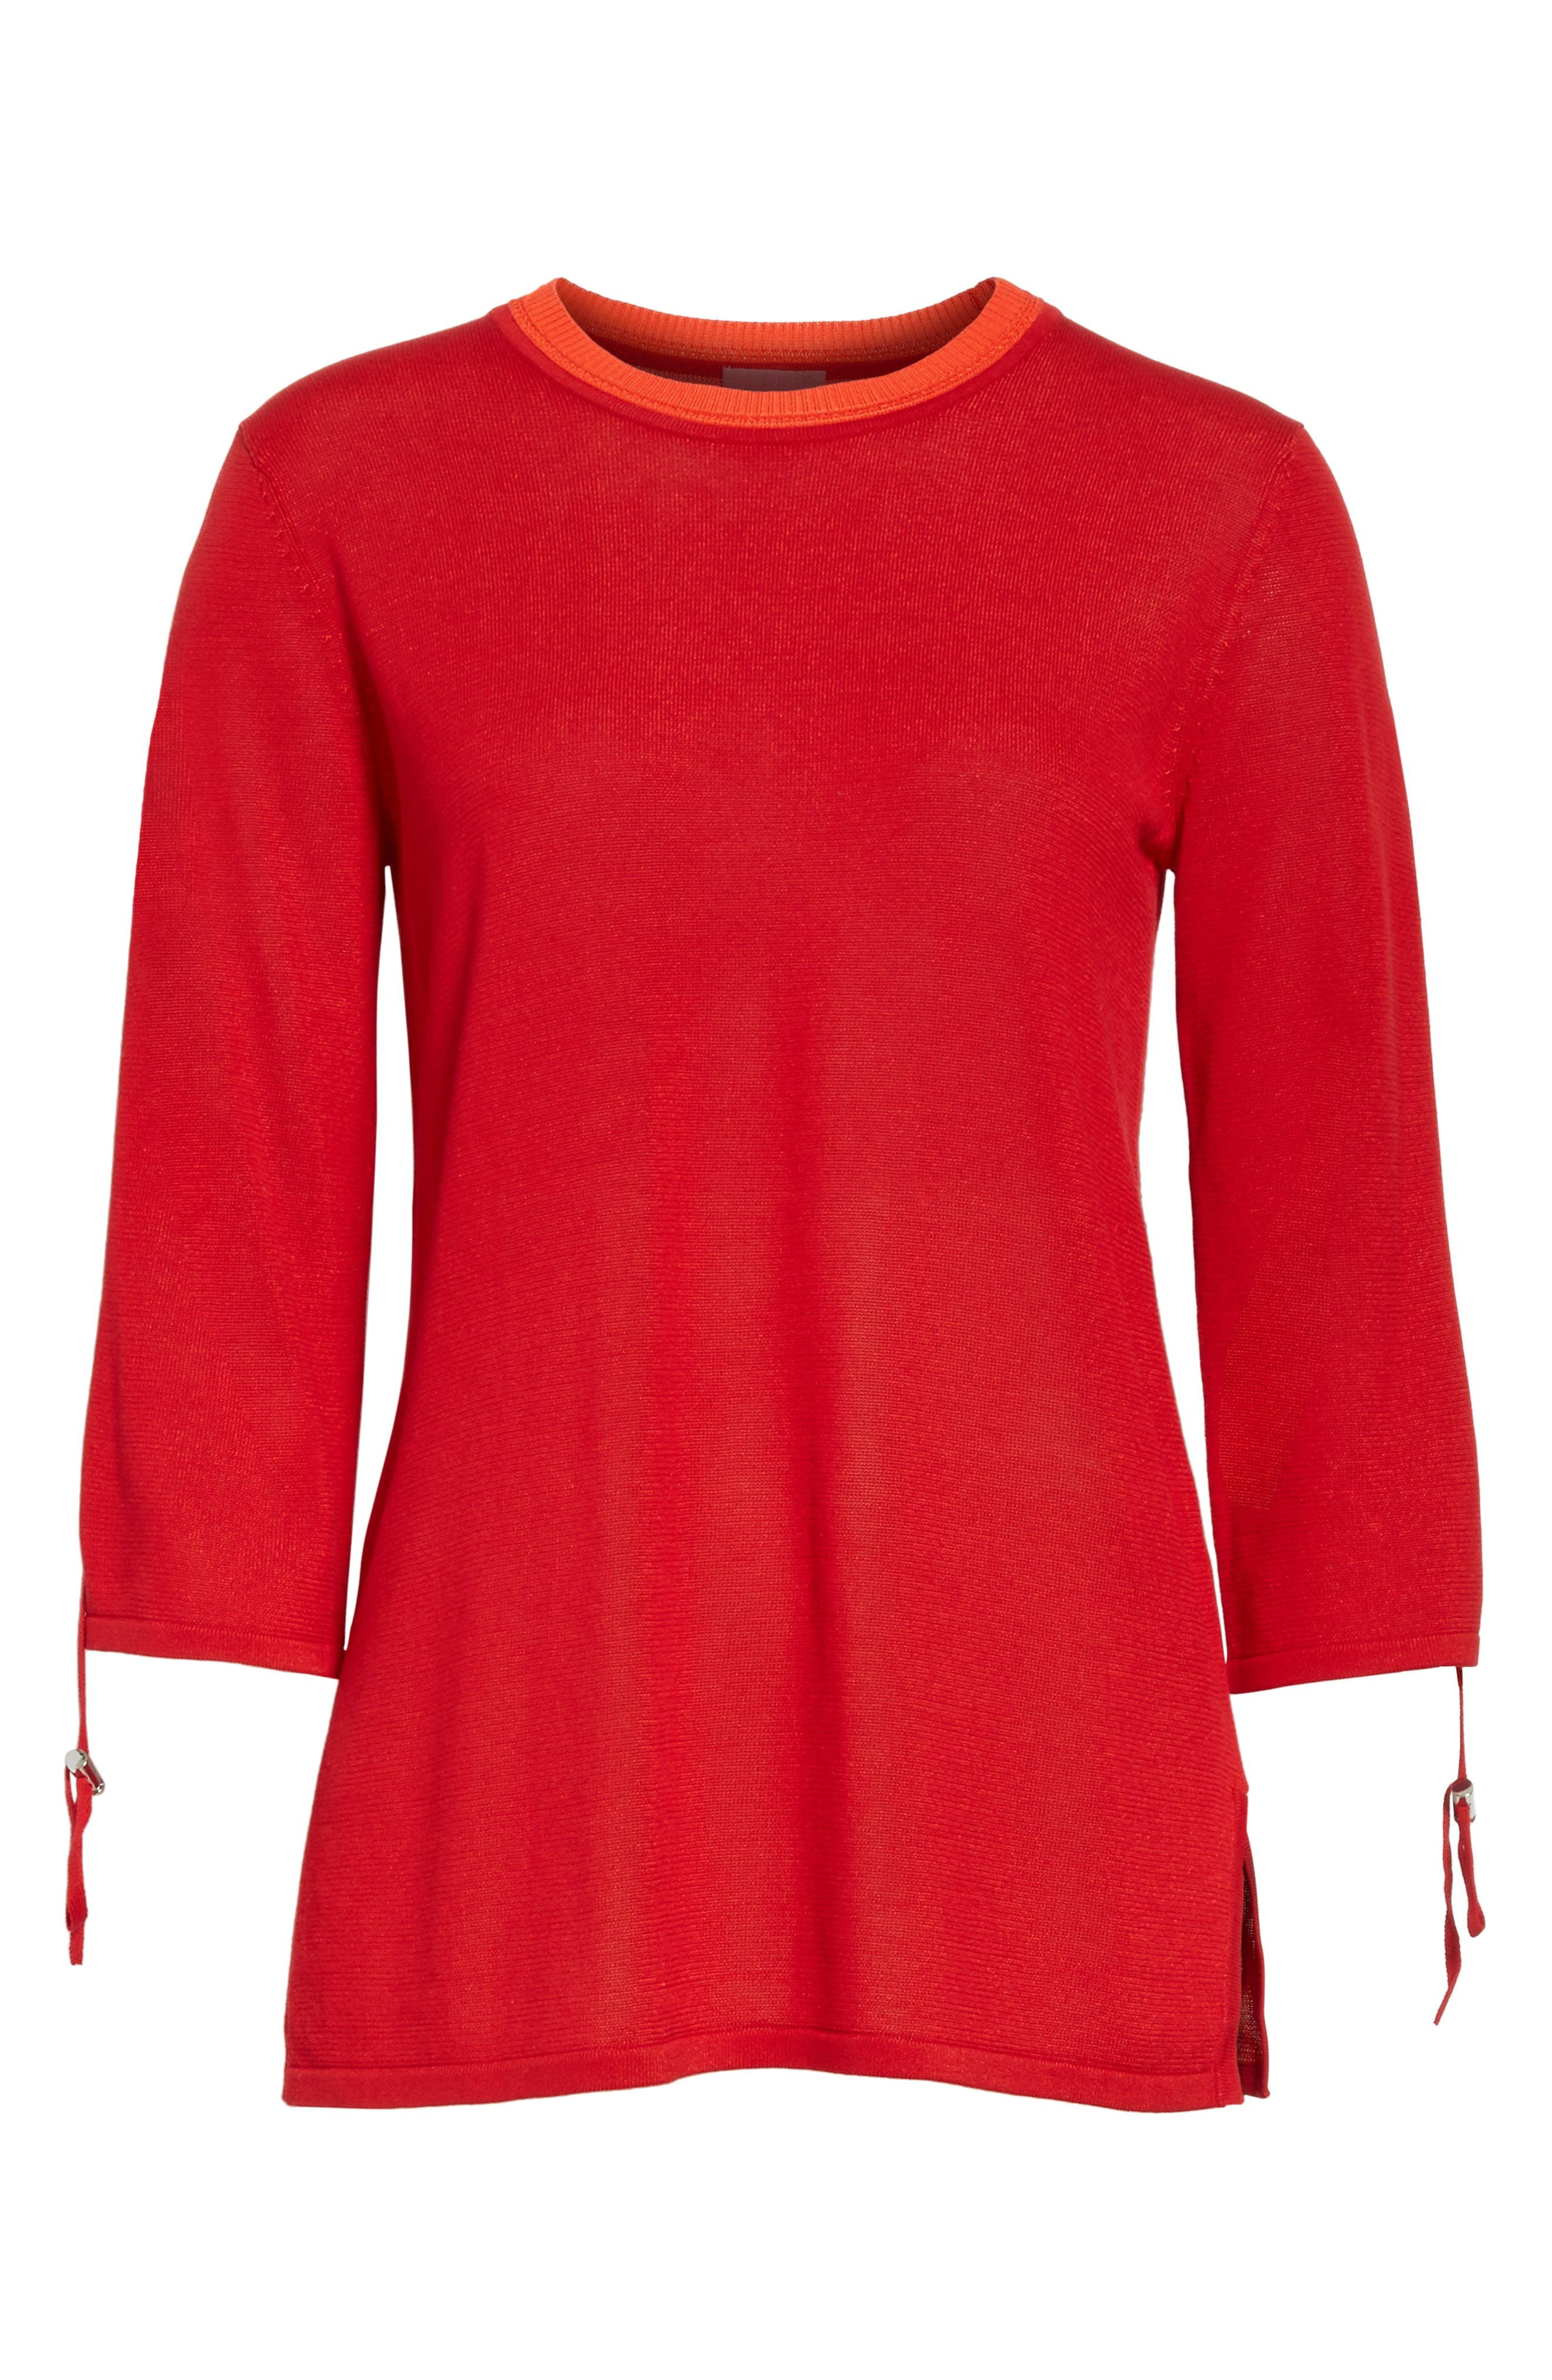 Ruched Sleeve Sweater,                             Alternate thumbnail 7, color,                             Cherry